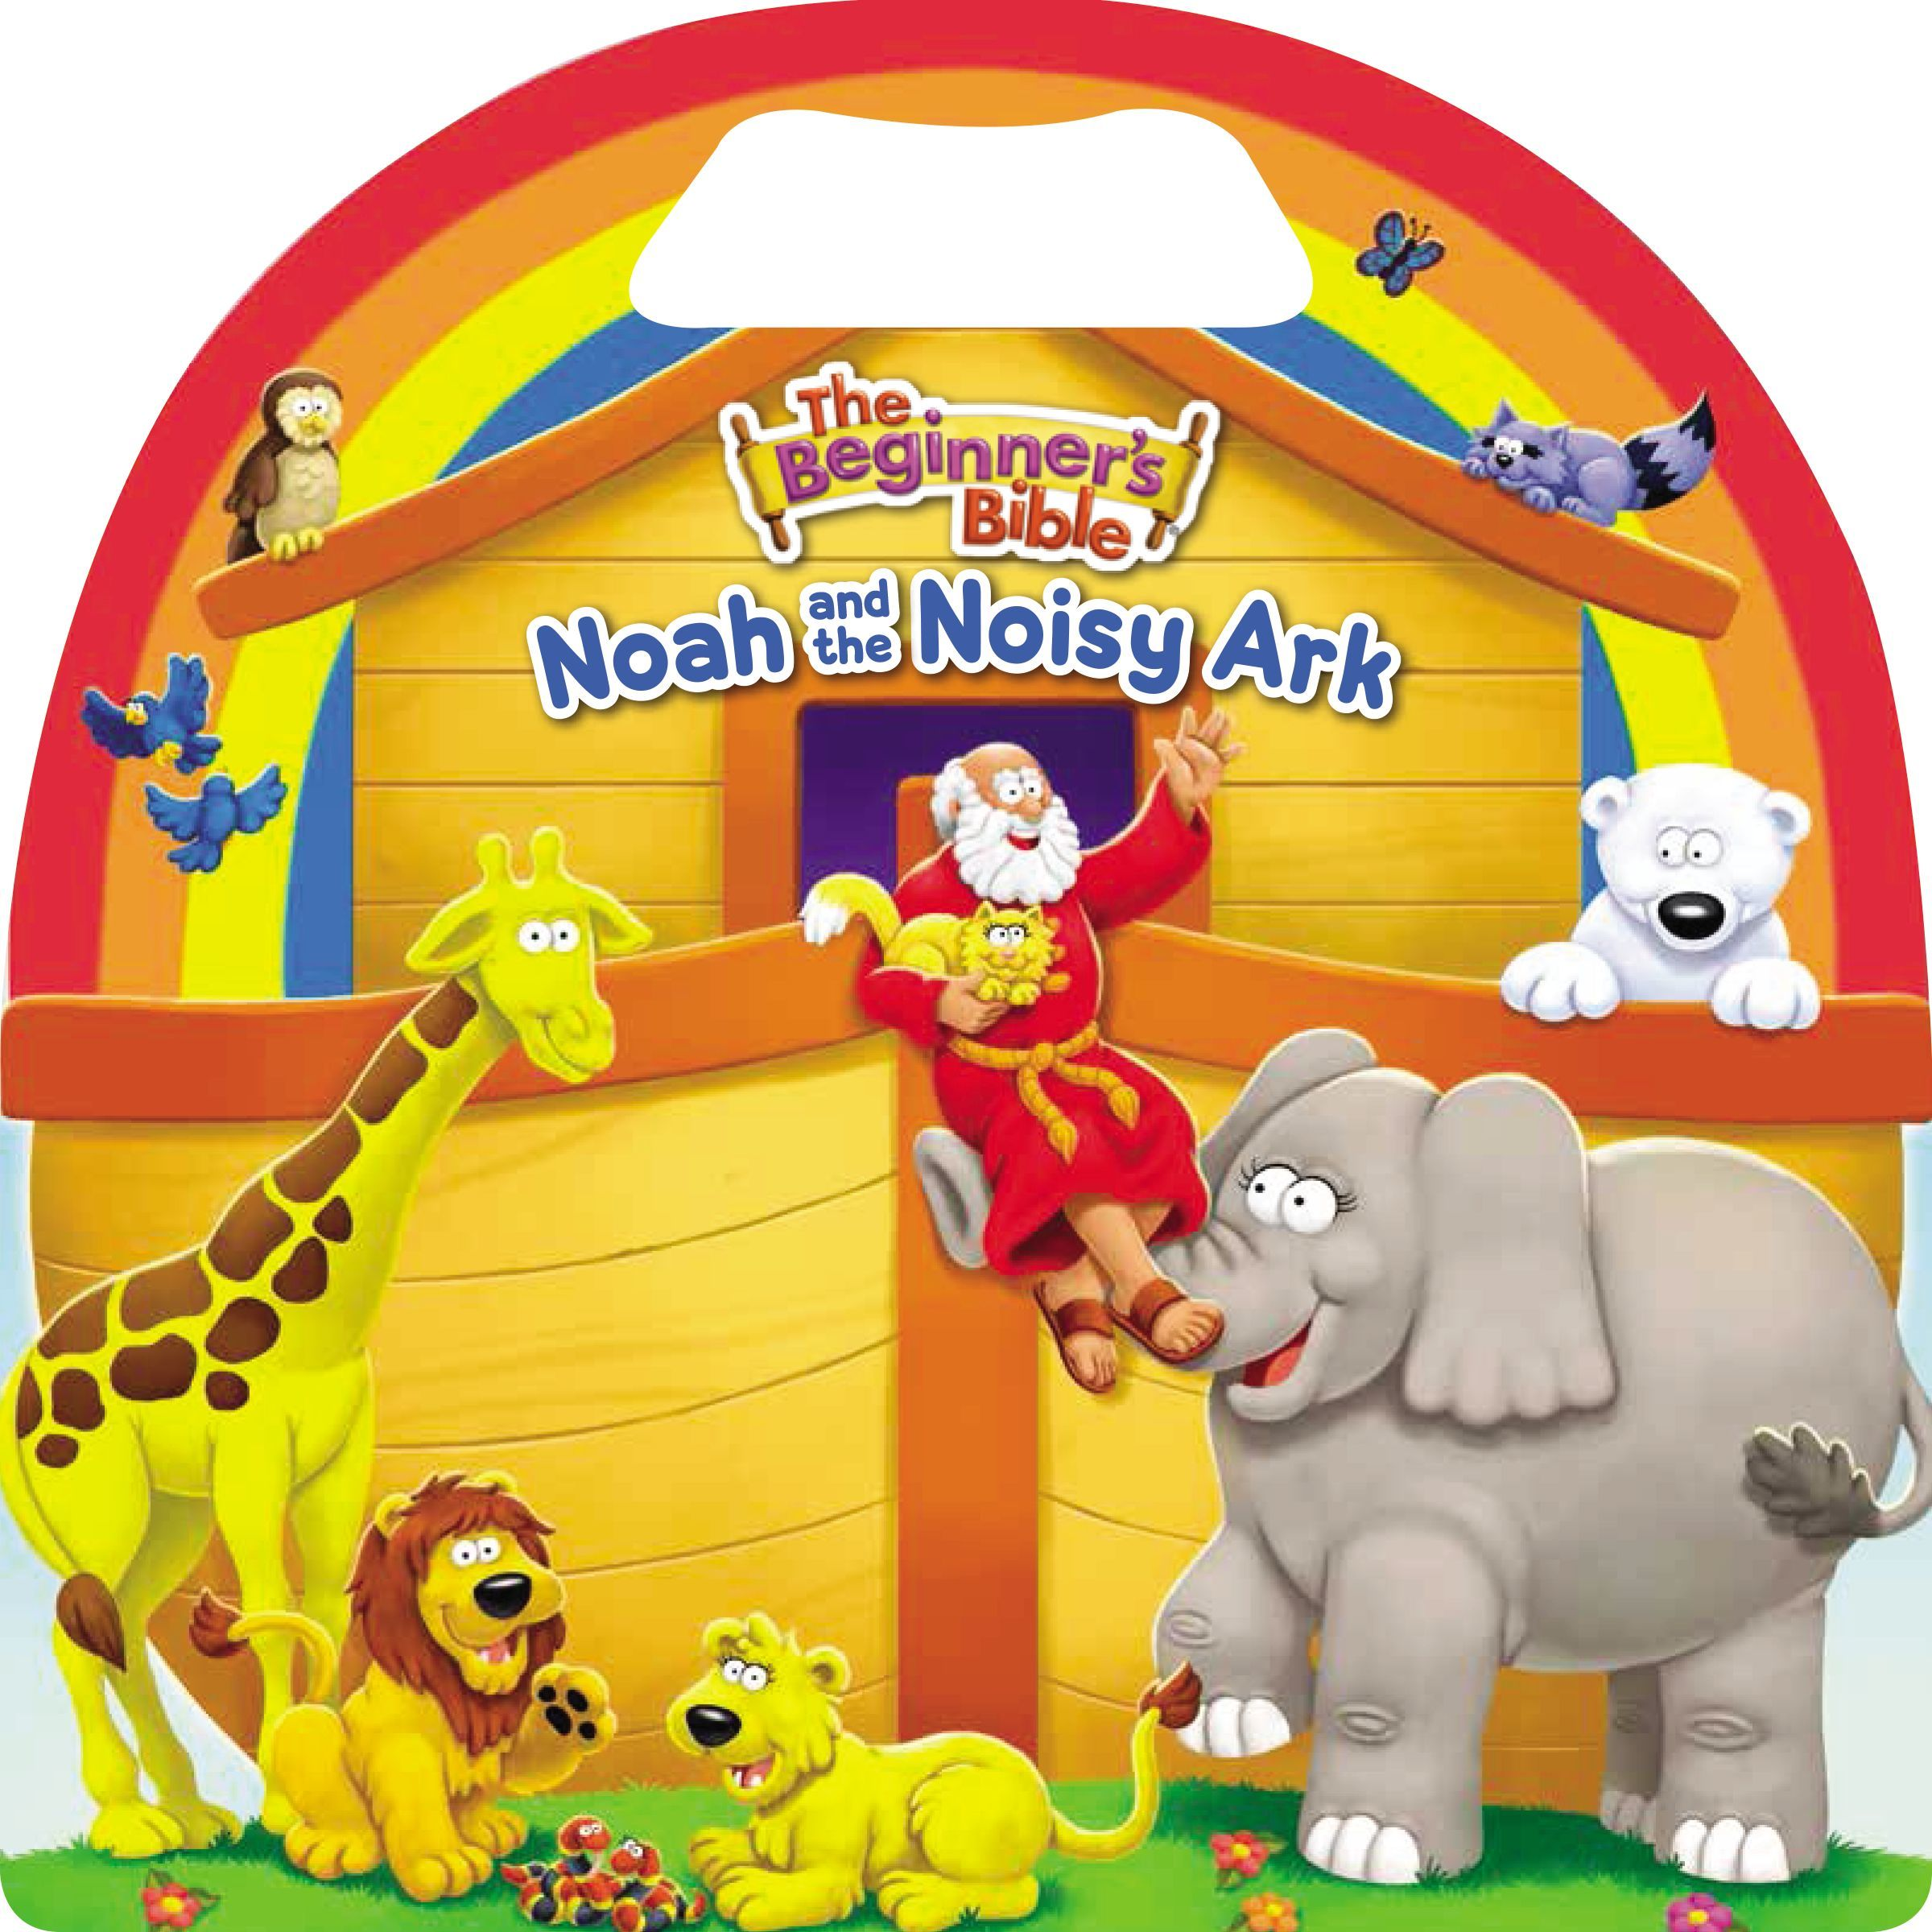 Beginner's Bible Noah and the Noisy Ark